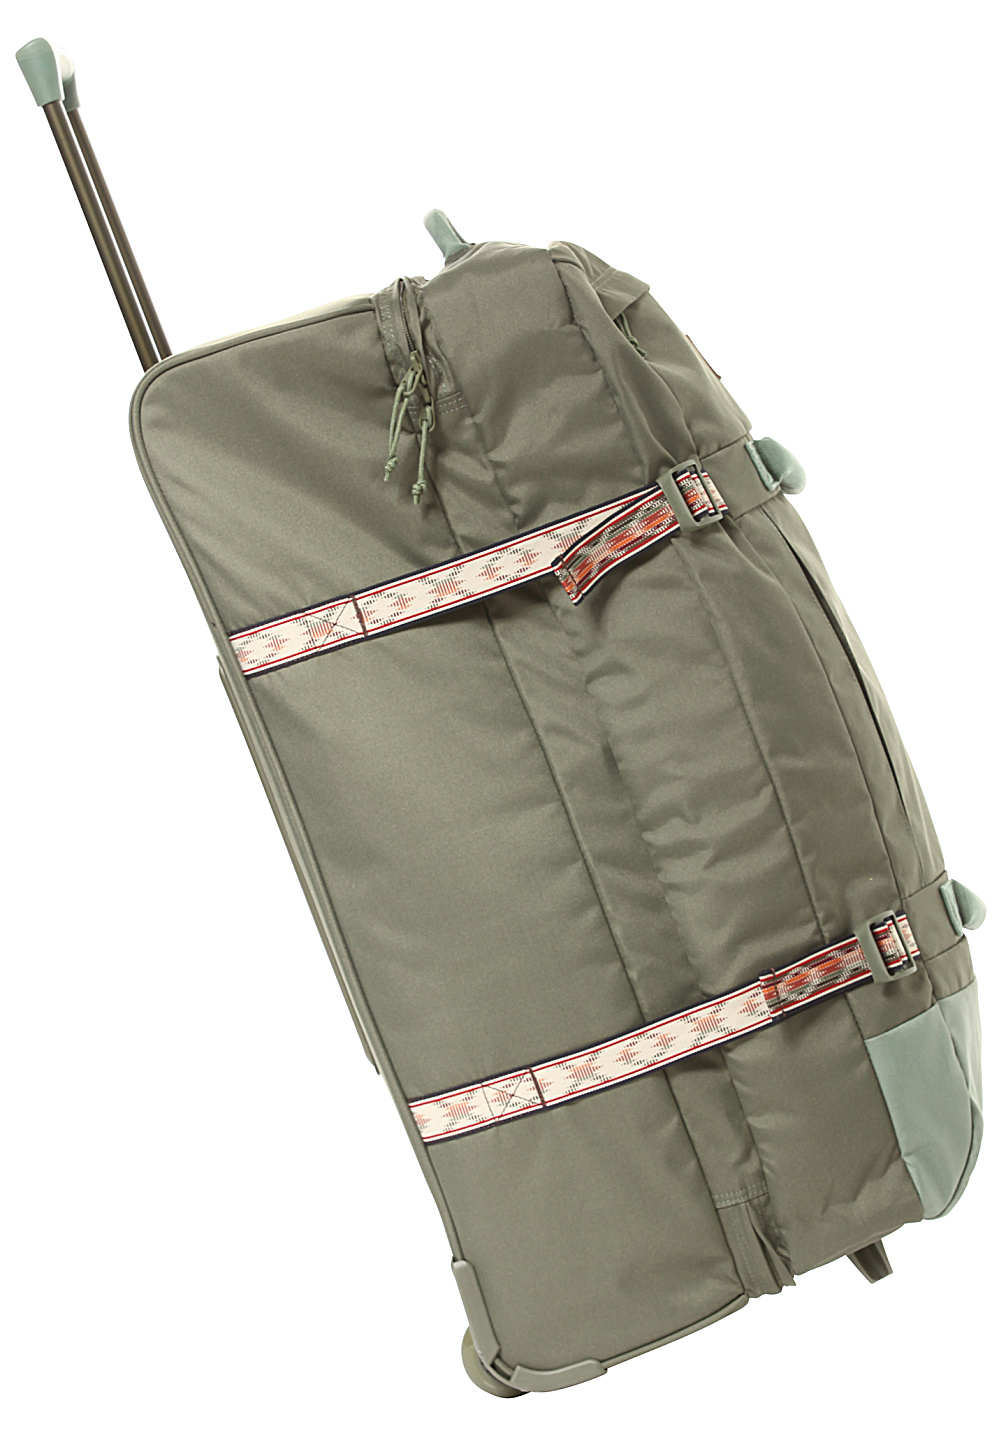 1a0fe0e273fc Previous. Next. -35%. This product is currently out of stock. Burton. Exodus  Roller 120 L - Travel Bag